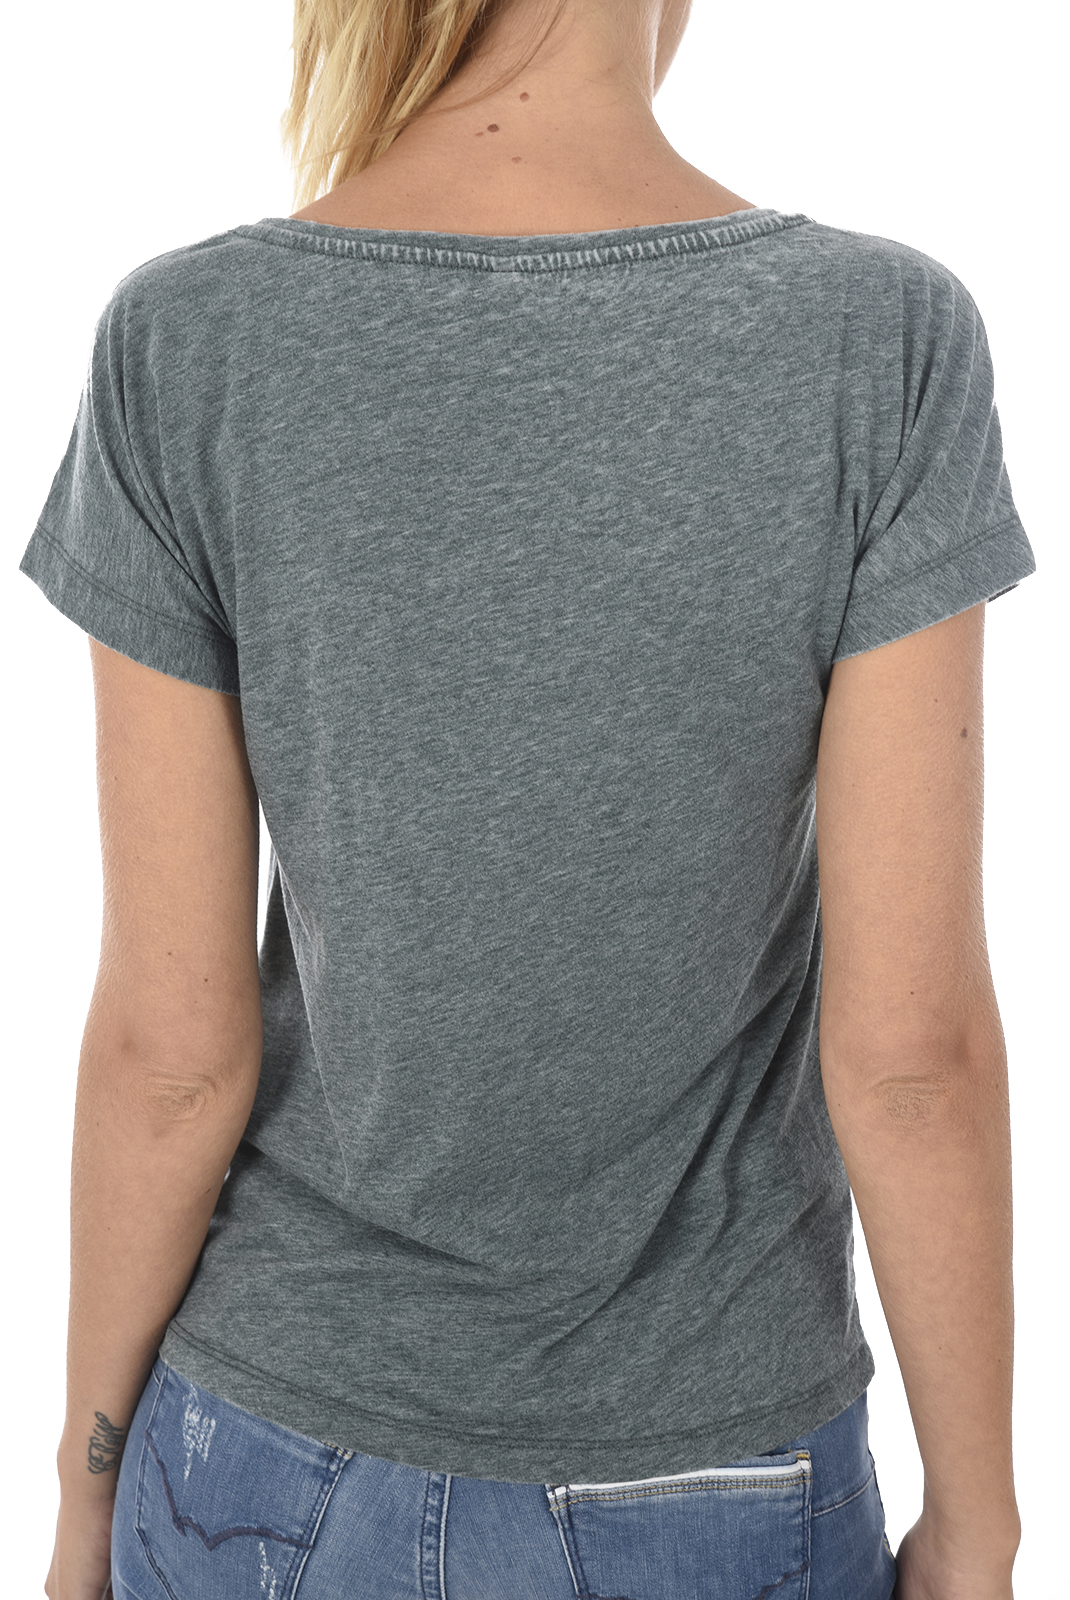 Tops & Tee shirts  Only TRULY S/S V-NECK PONDEROSA PINE